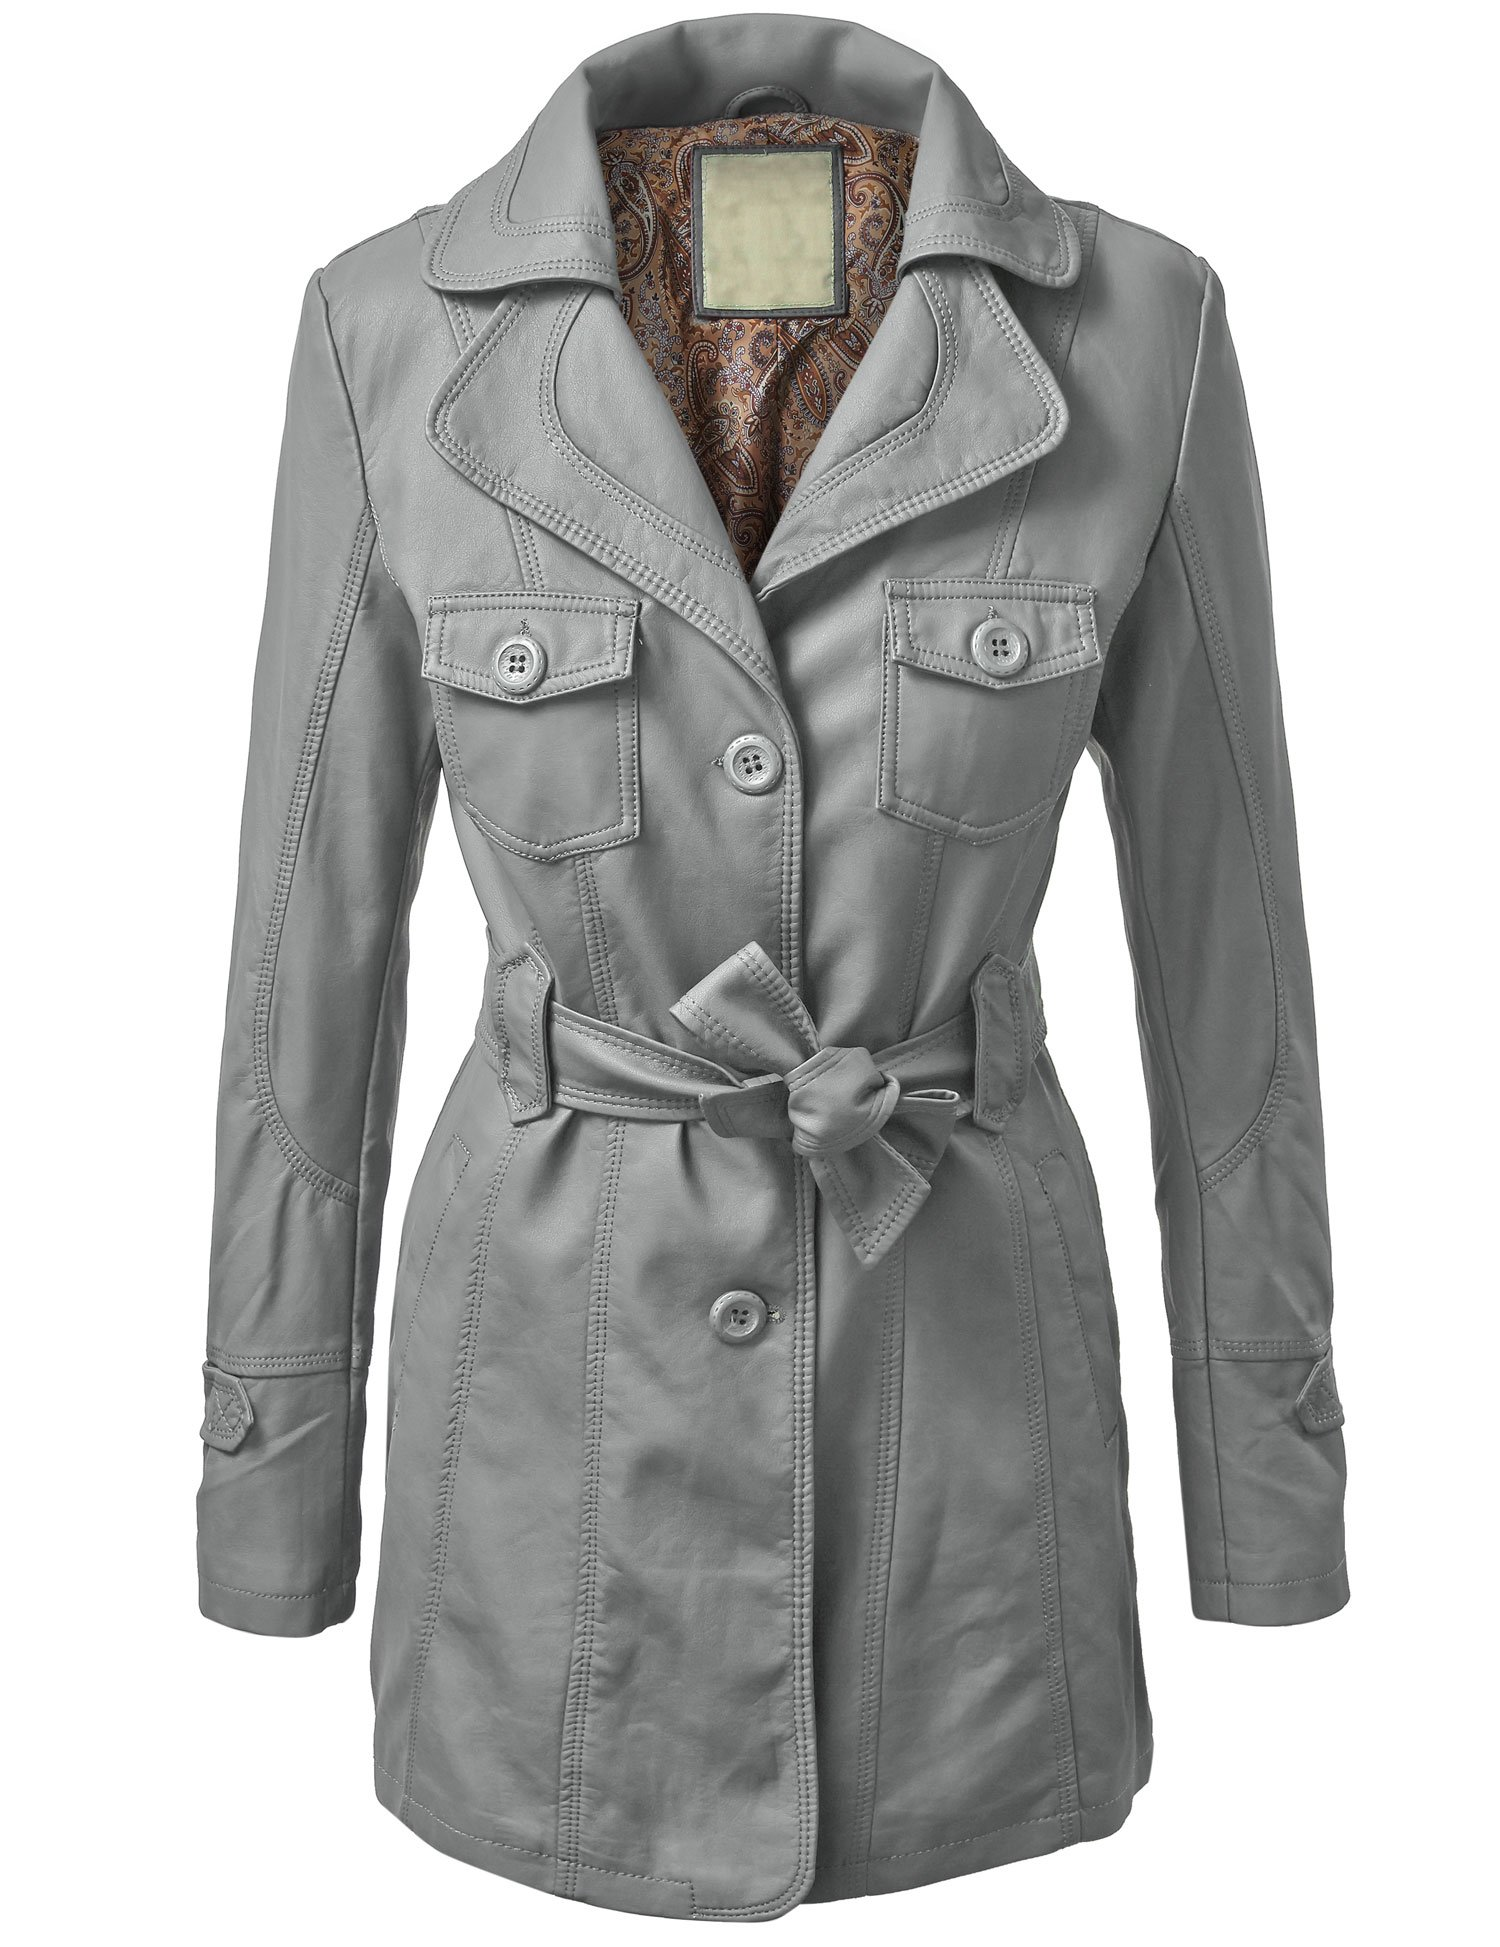 WJC740 Womens Mod Faux Leather Trench Coat S GRAY